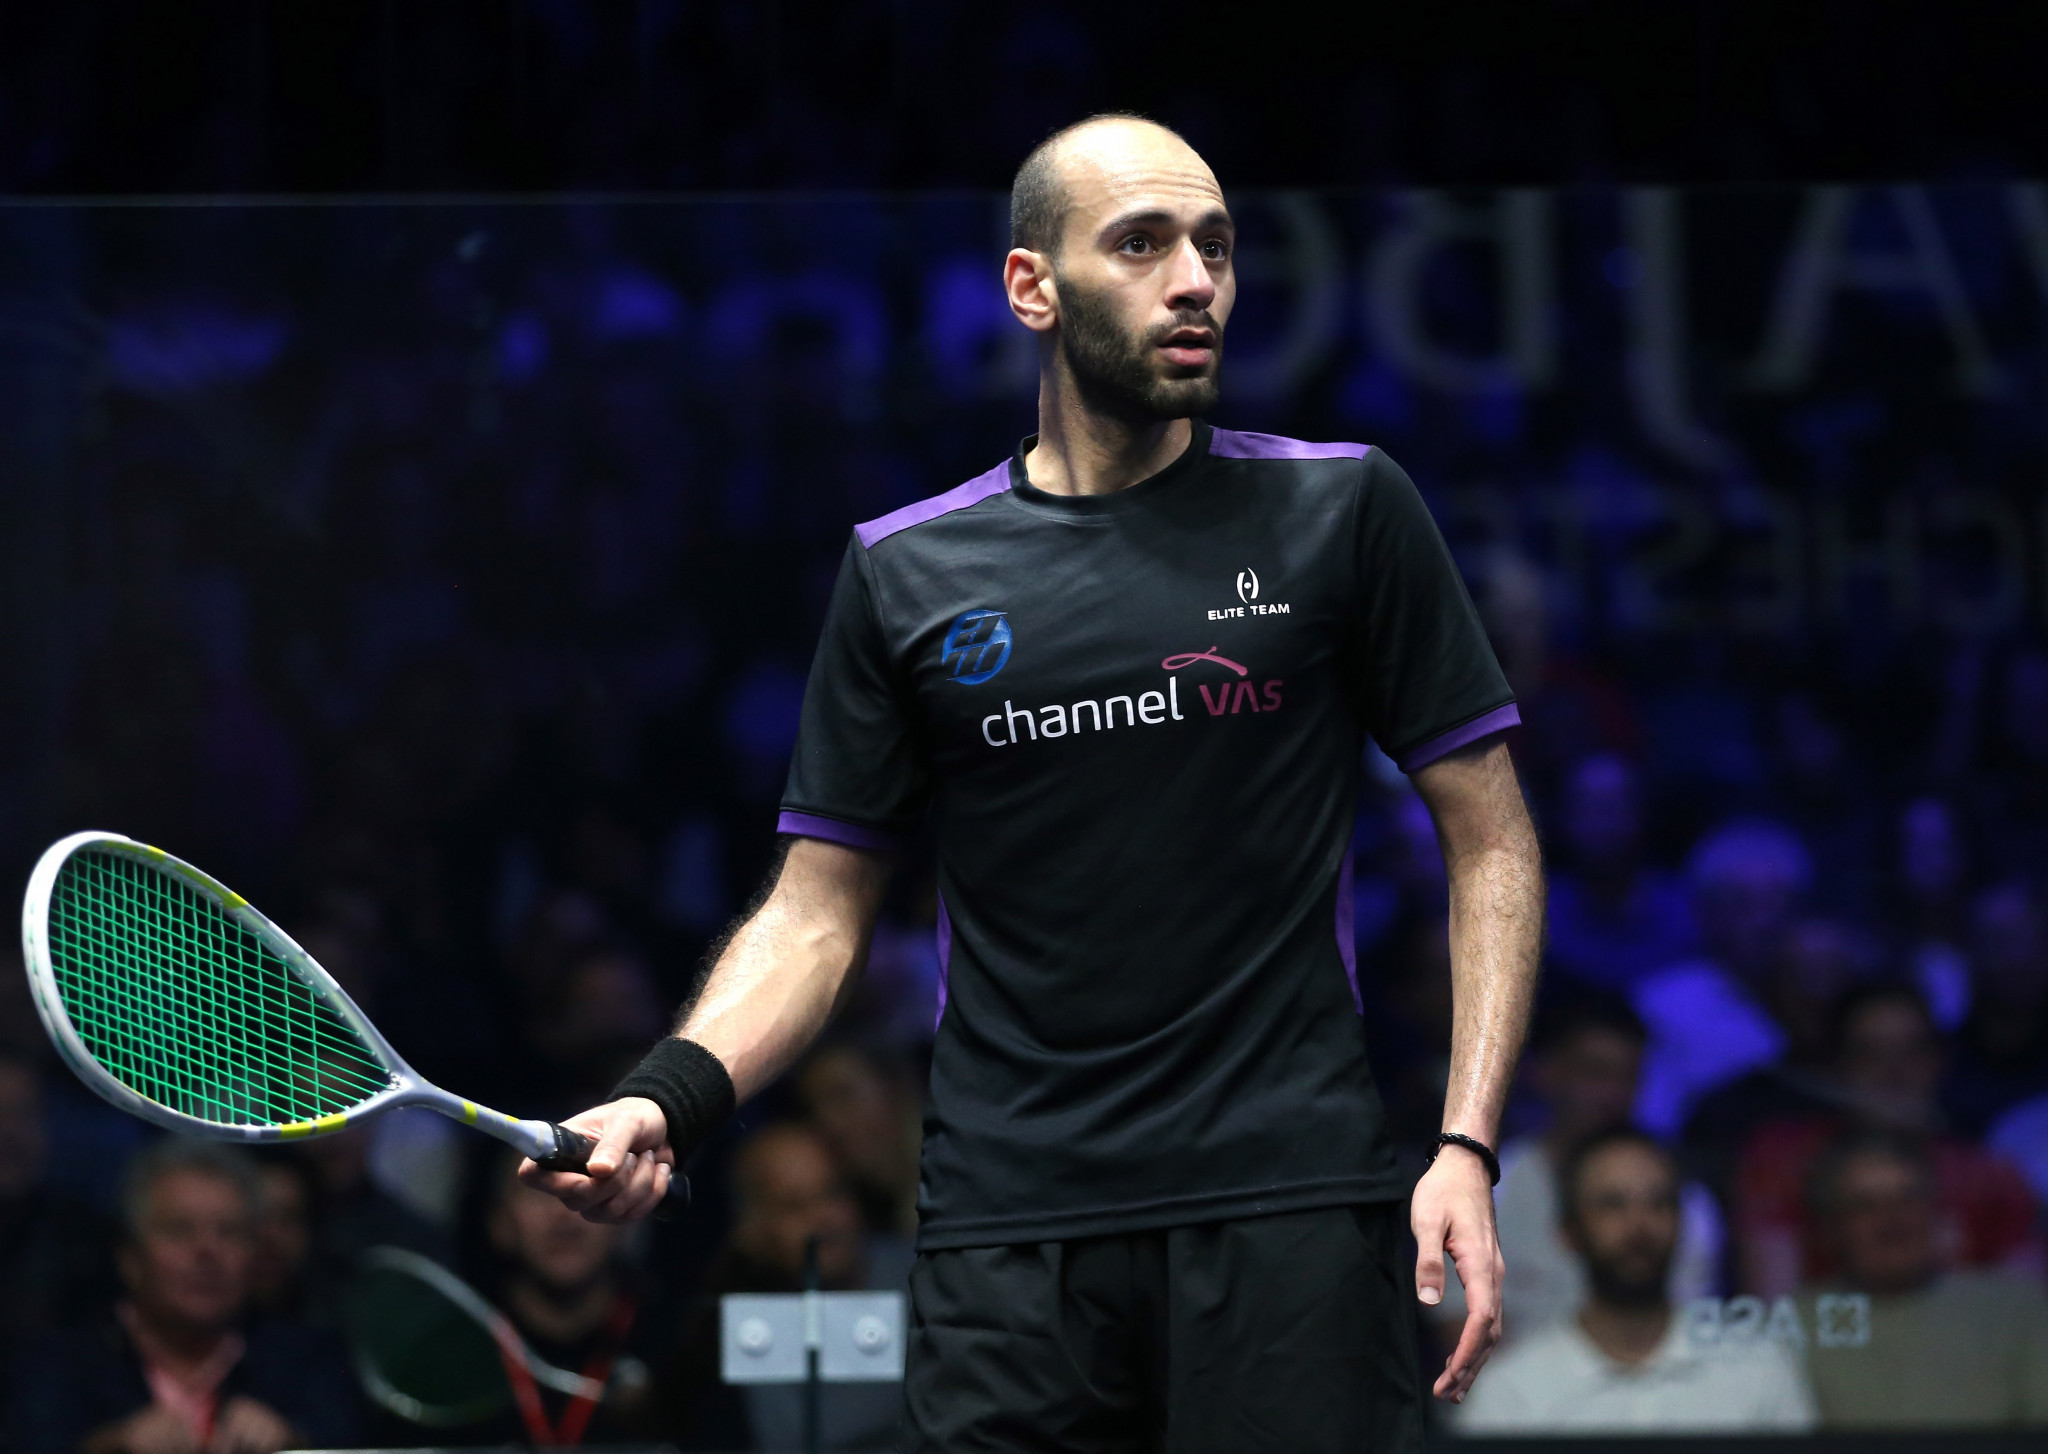 Egypt's Karim Abdel Gawad geared up for his clash with top ranked Ali Farag with a straight sets win over New Zealand's Paul Coll at the PSA World Tour Finals in Cairo ©Getty Images